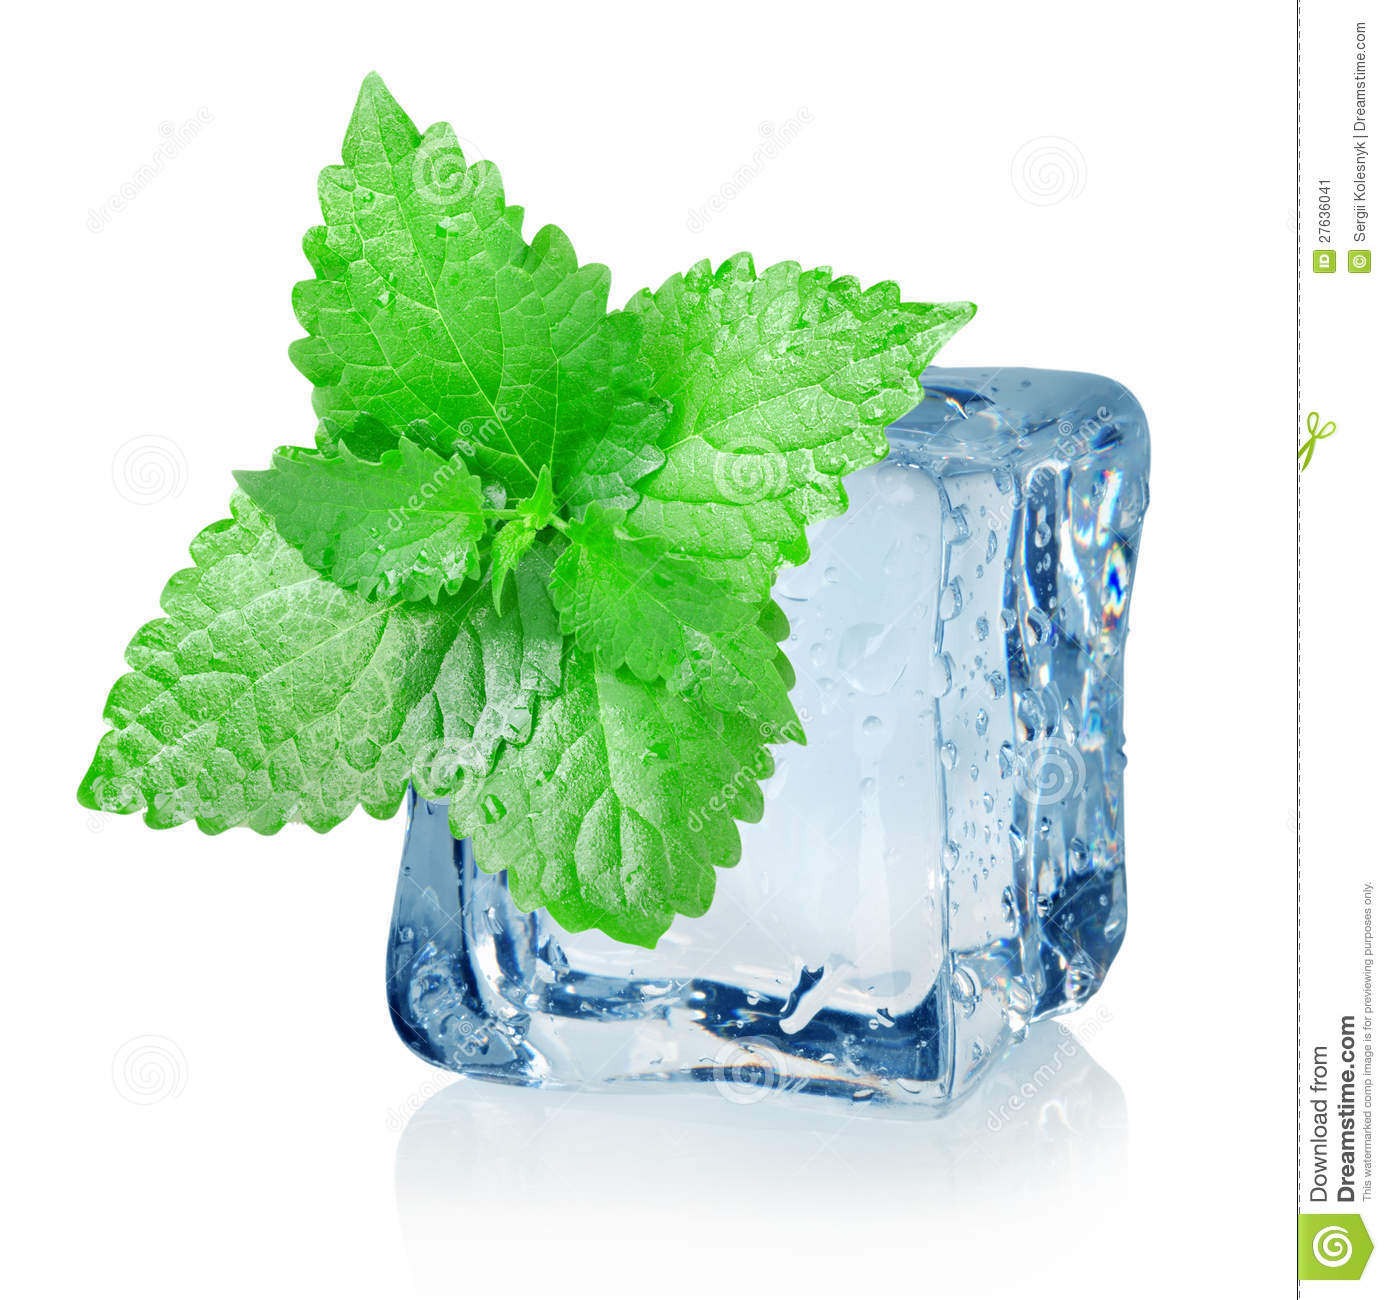 Ice Cube And Mint Stock Image - Image: 27636041